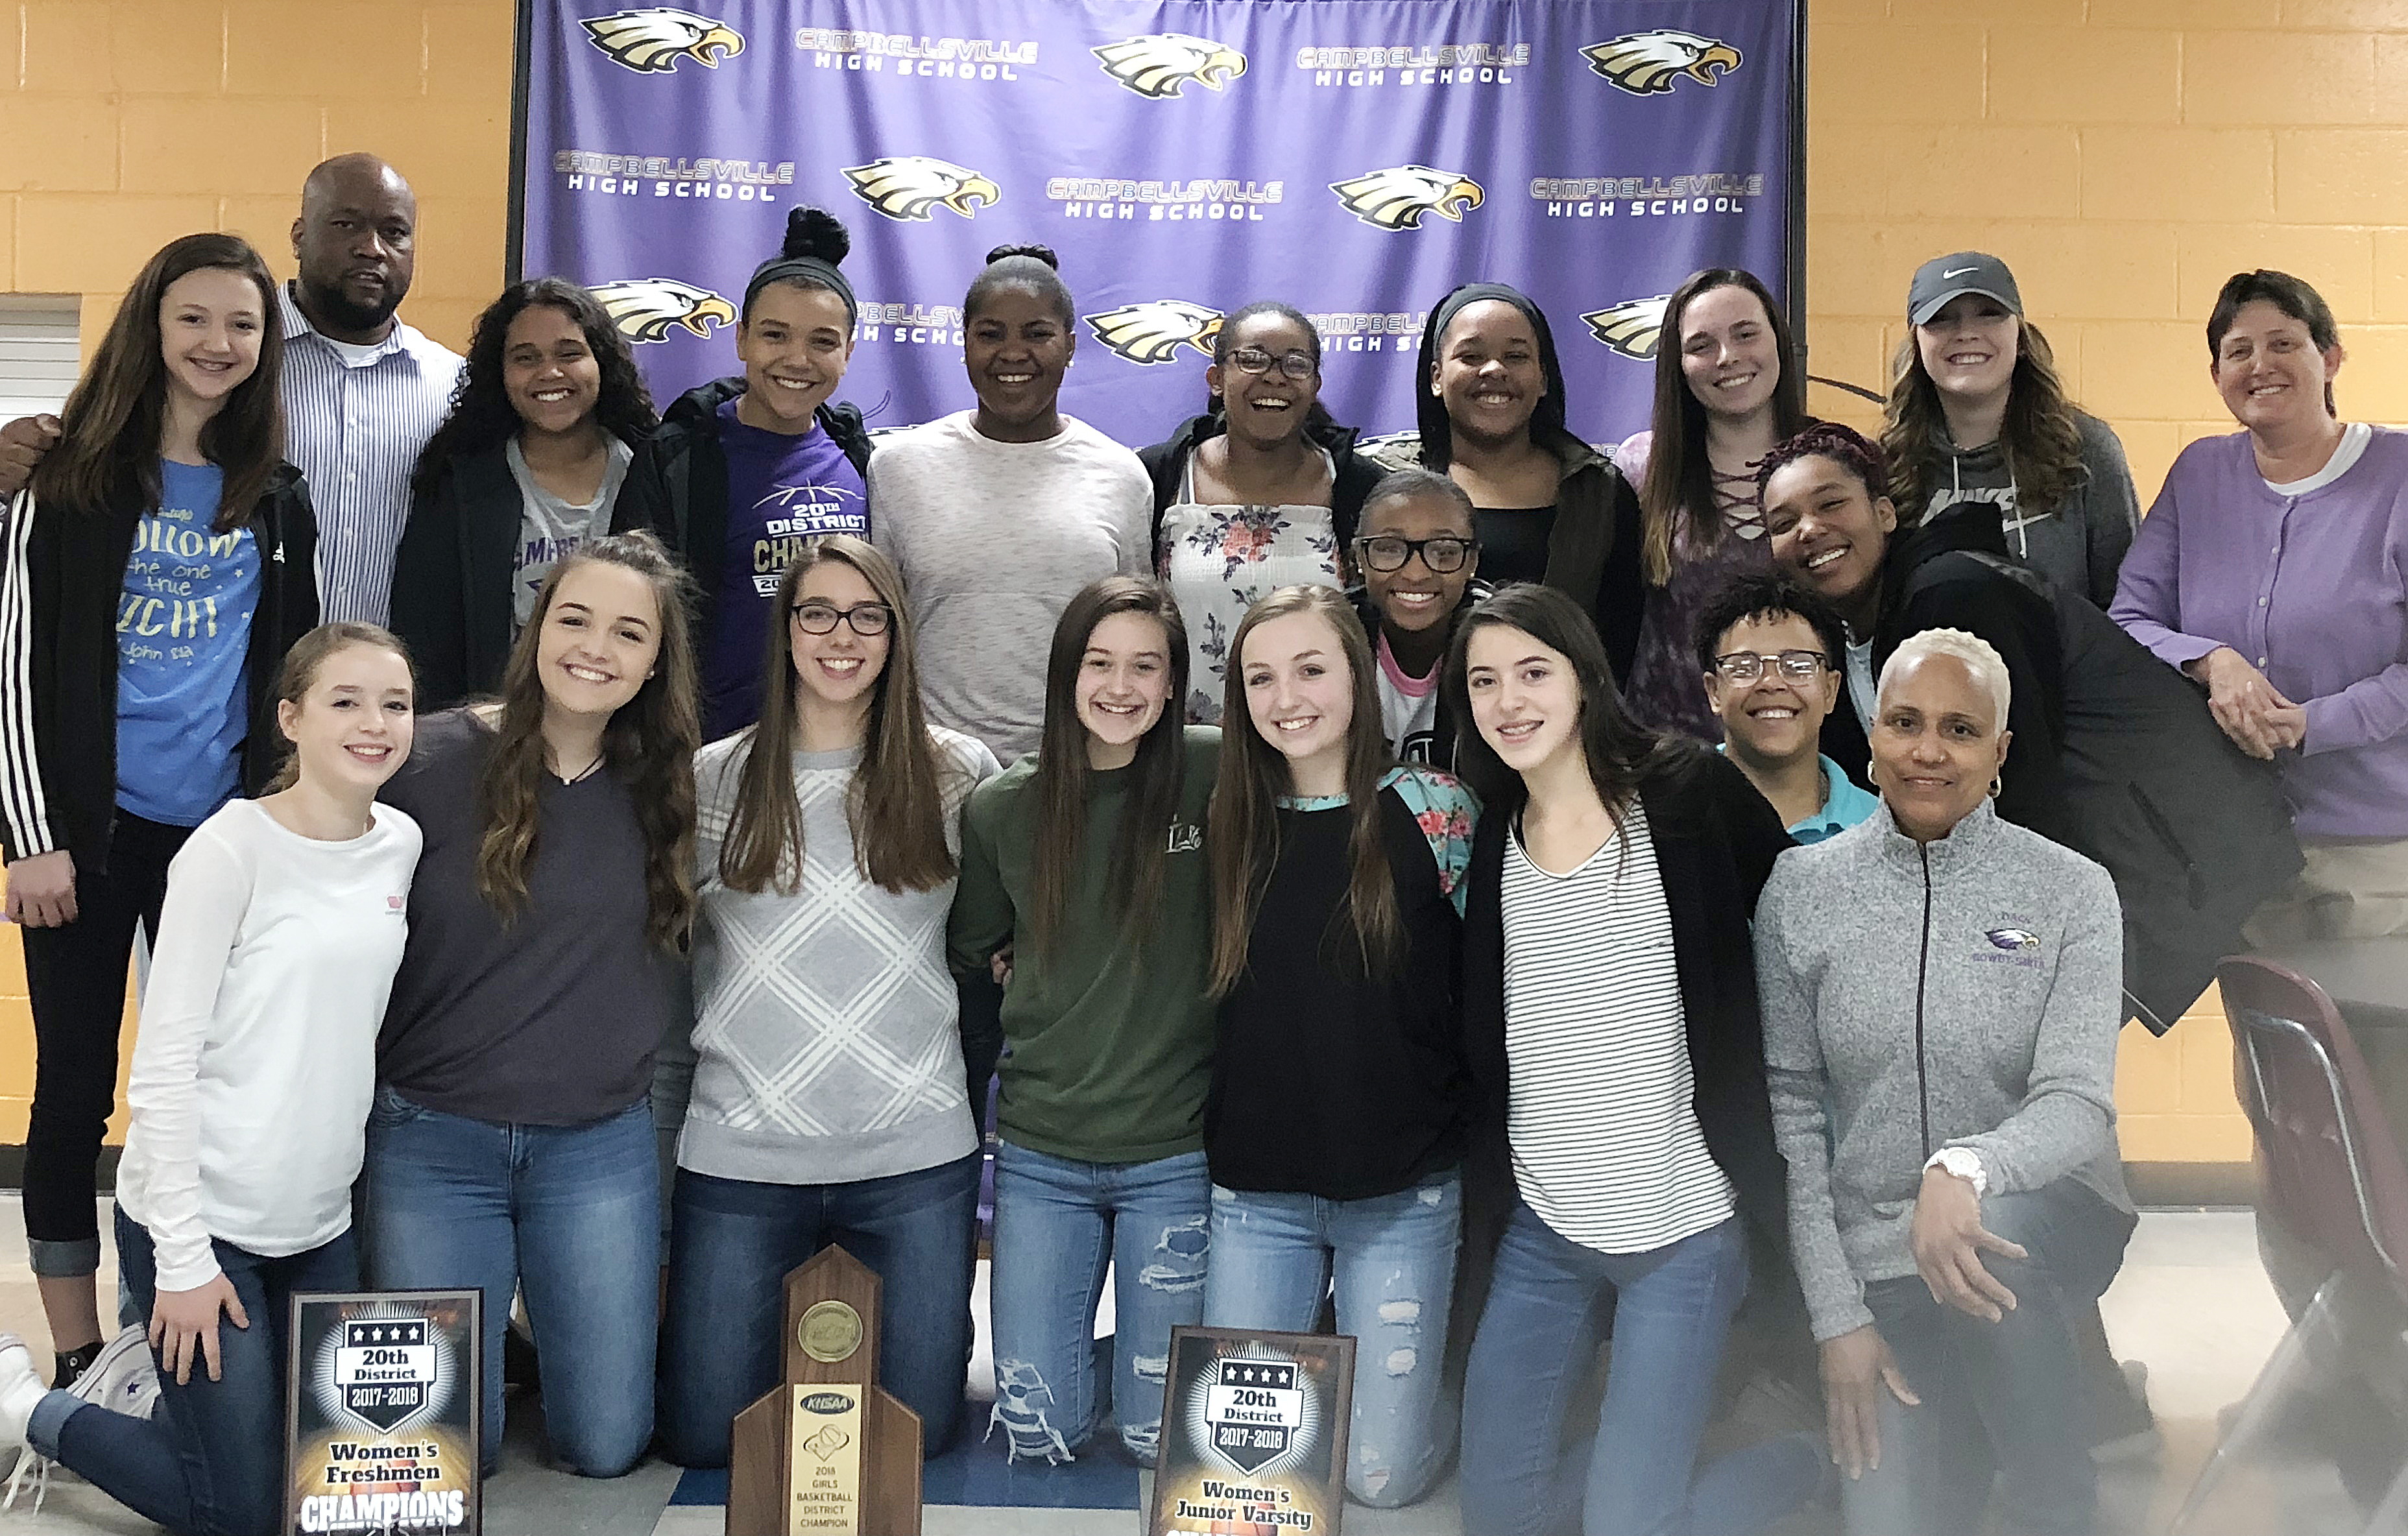 CHS girls' basketball players were recently honored for their dedication and hard work this historic season. From left, front, are eighth-grader Rylee Petett, freshmen Kenzi Forbis and Abi Wiedewitsch, sophomore Bailey Thompson, eighth-graders Lainey Watson, Bri Gowdy and Kaylyn Smith, juniors Dee Simpson and Malaya Hoskins and assistant coach Debbie Gowdy-Smith. Back, seventh-grader Bri Hayes, head coach Anthony Epps, sophomore Siera Owens, junior Kalisha Murphy, seniors Nena Barnett, Vonnea Smith and Kayla Young, sophomore Katelyn Miller, freshman Catlyn Clausen and assistant coach Katie Wilkerson. Absent from the photo are seventh-grader Antaya Epps, sophomore Isis Coleman and senior Kiyah Barnett.